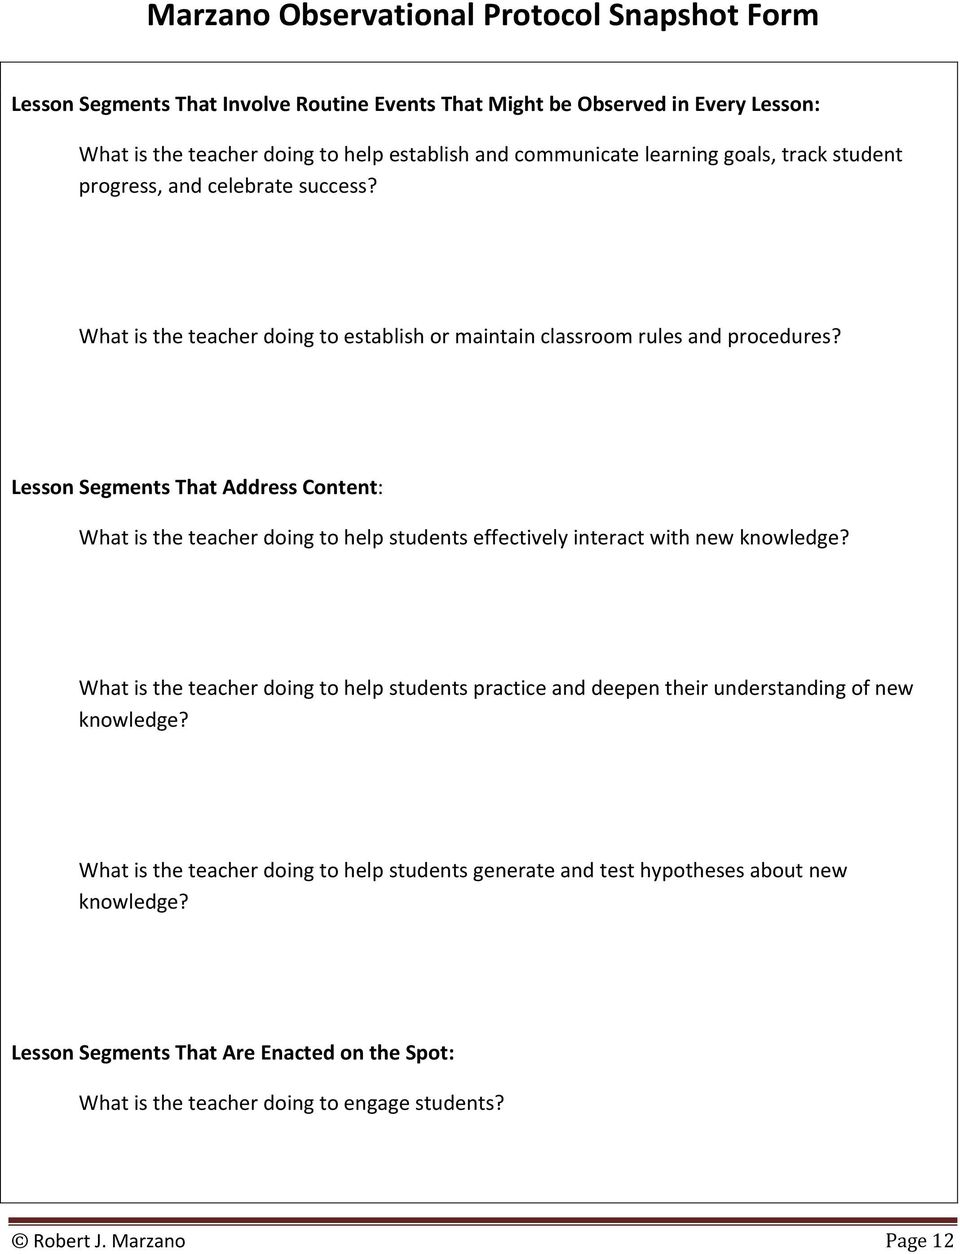 Lesson Segments That Address Content: What is the teacher doing to help students effectively interact with new knowledge?